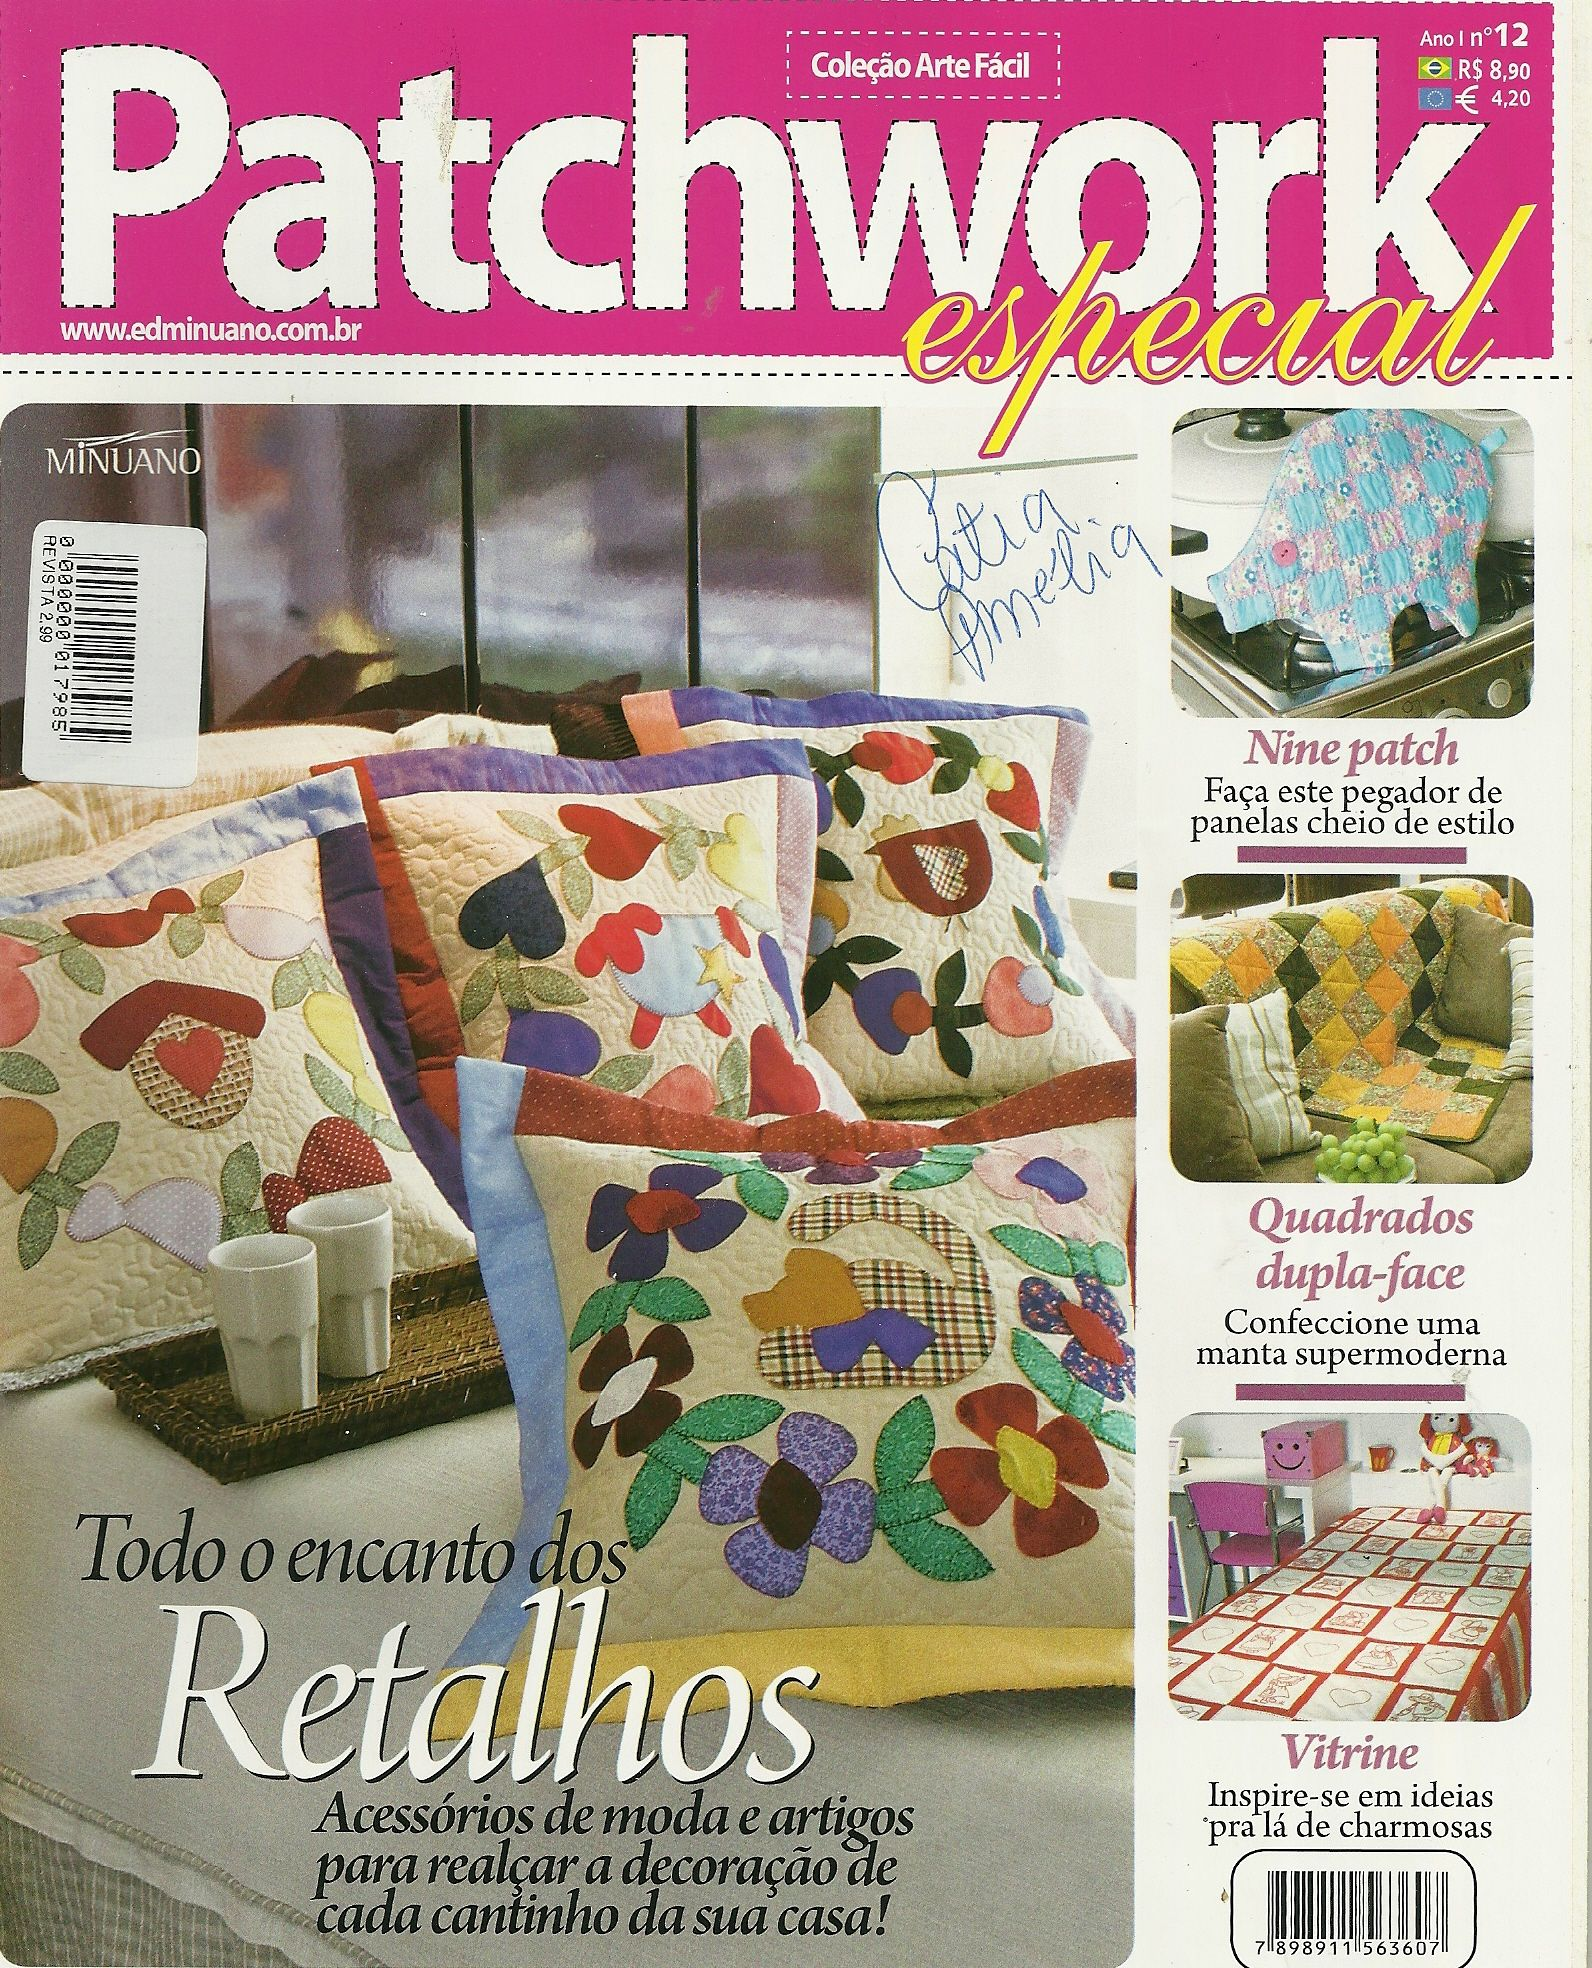 PATCHWORK especial Ano 1 N 12 s 1 of 73